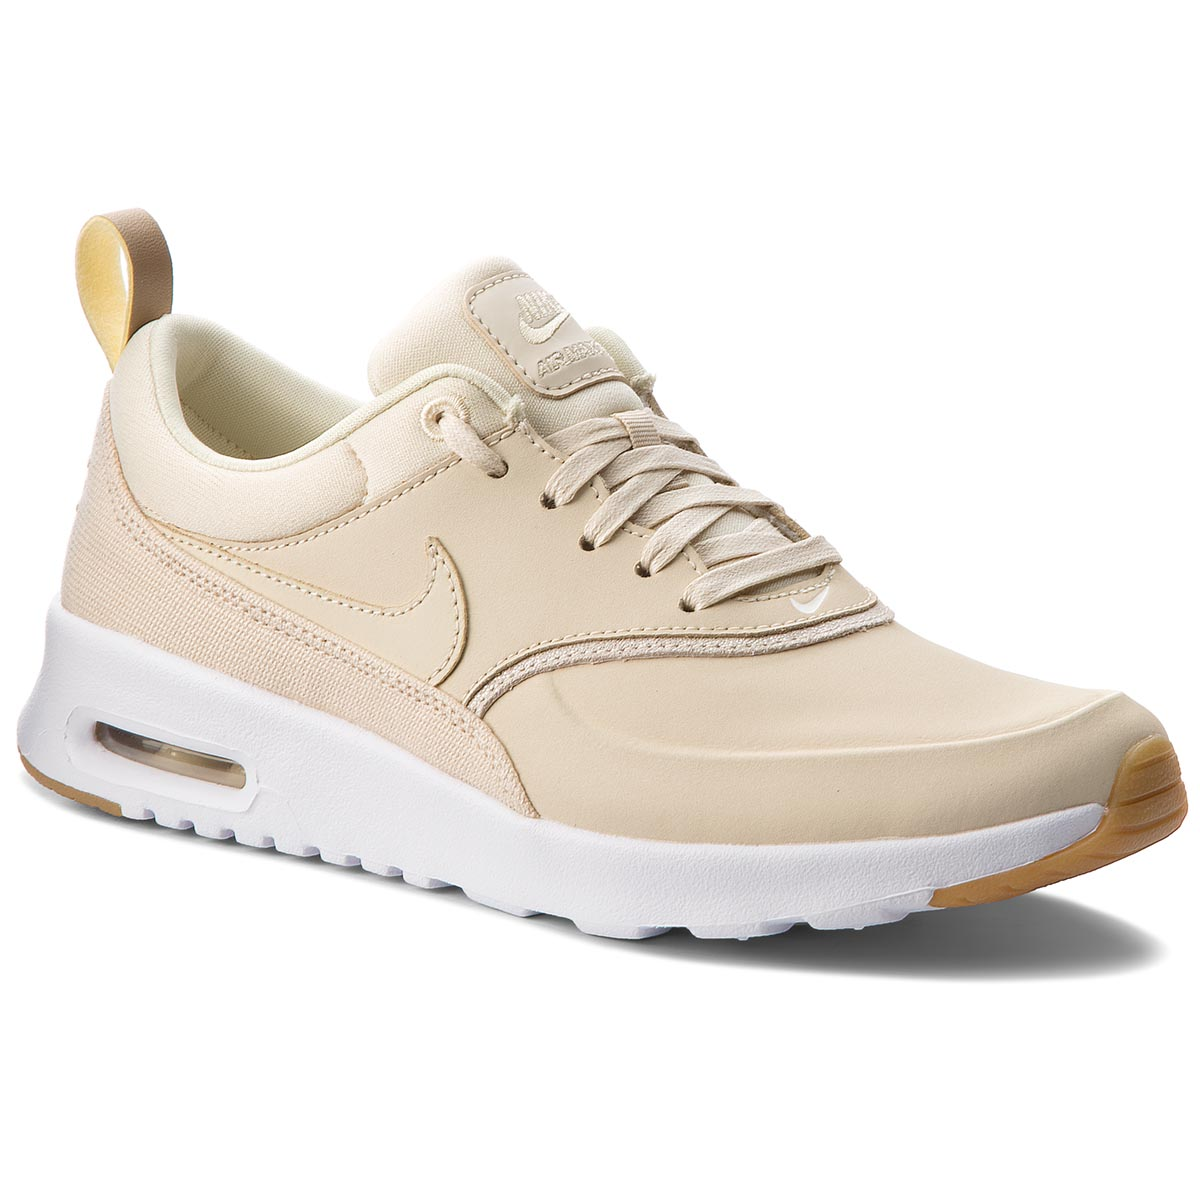 competitive price 0cdc8 b0664 Pantofi NIKE Air Max Thea Prm 616723 204 Beach Beach Metallic Gold Sail